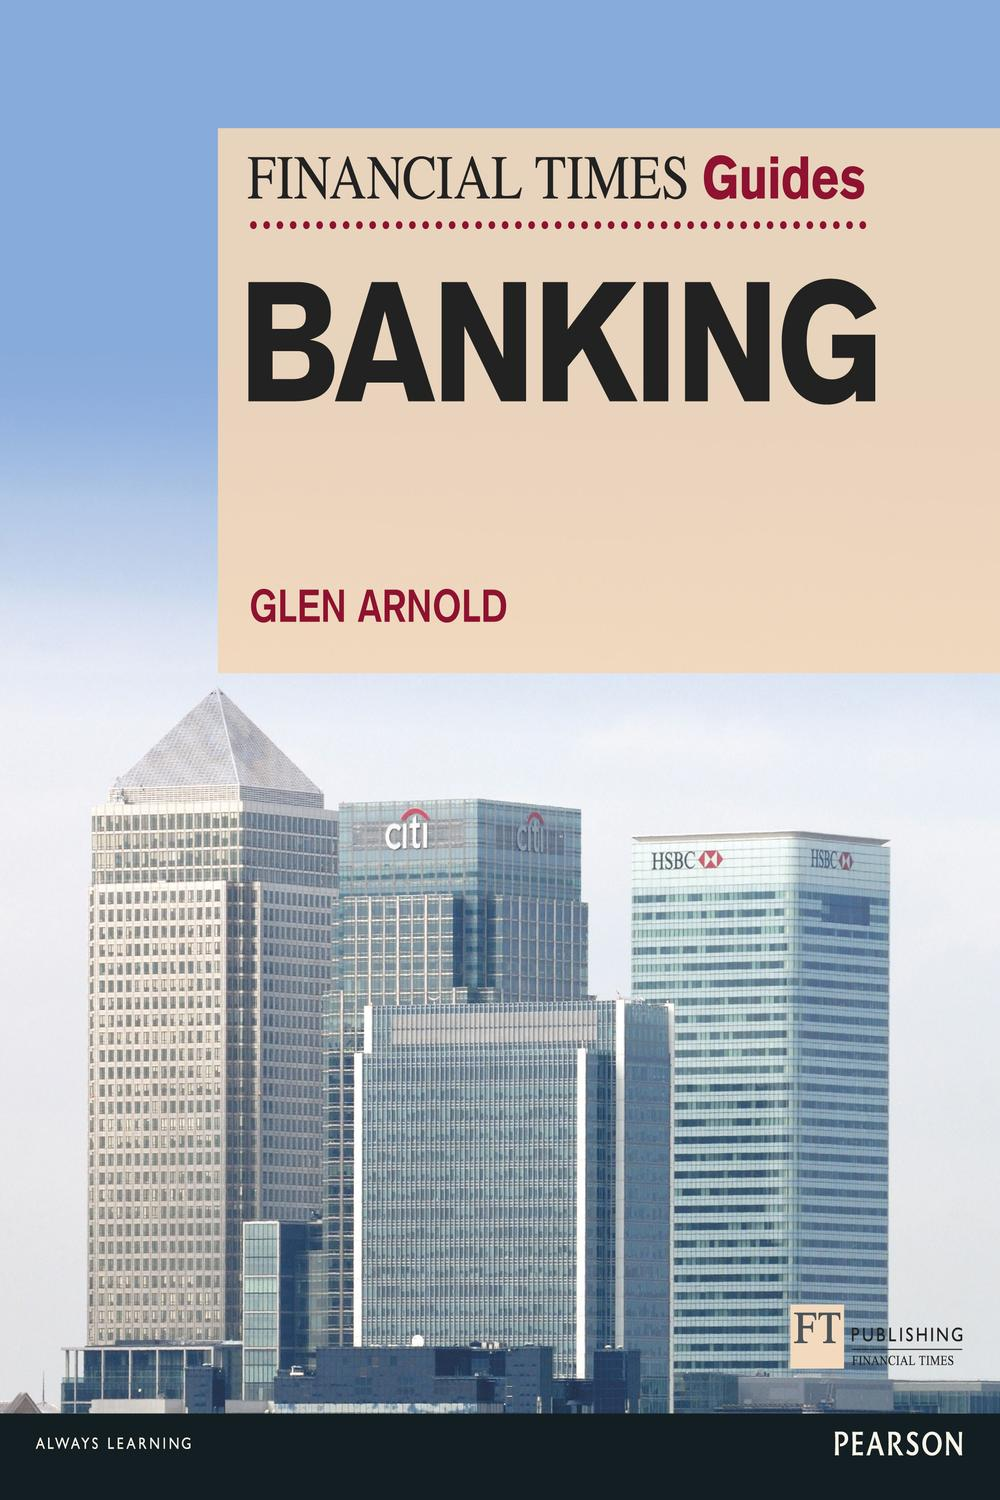 The Financial Times guide to banking